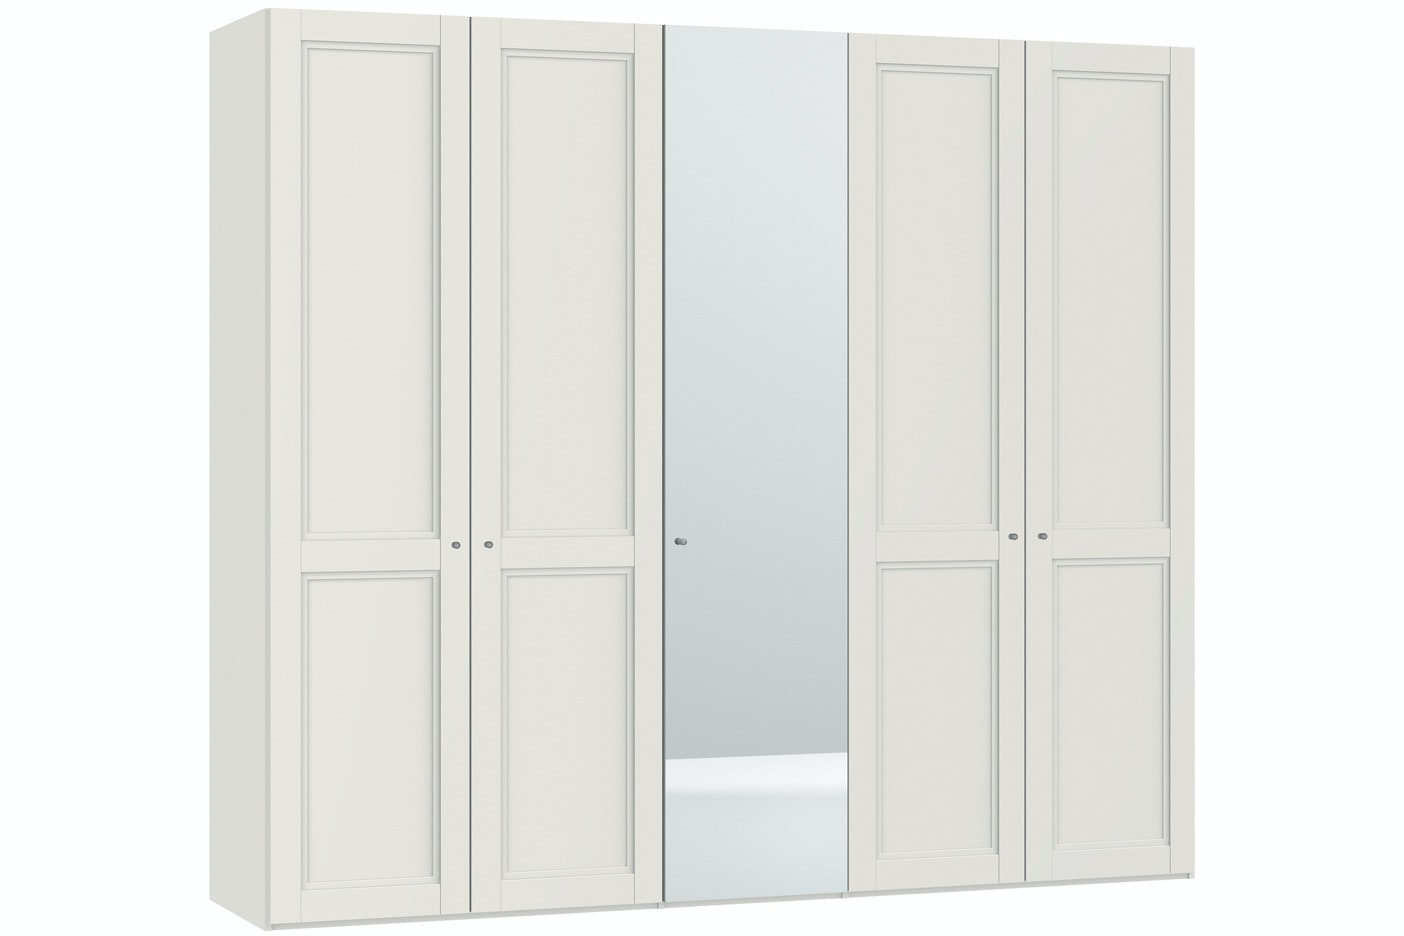 Emily Hinged 5 Door Wardrobe 253Cm | Country + Mirror